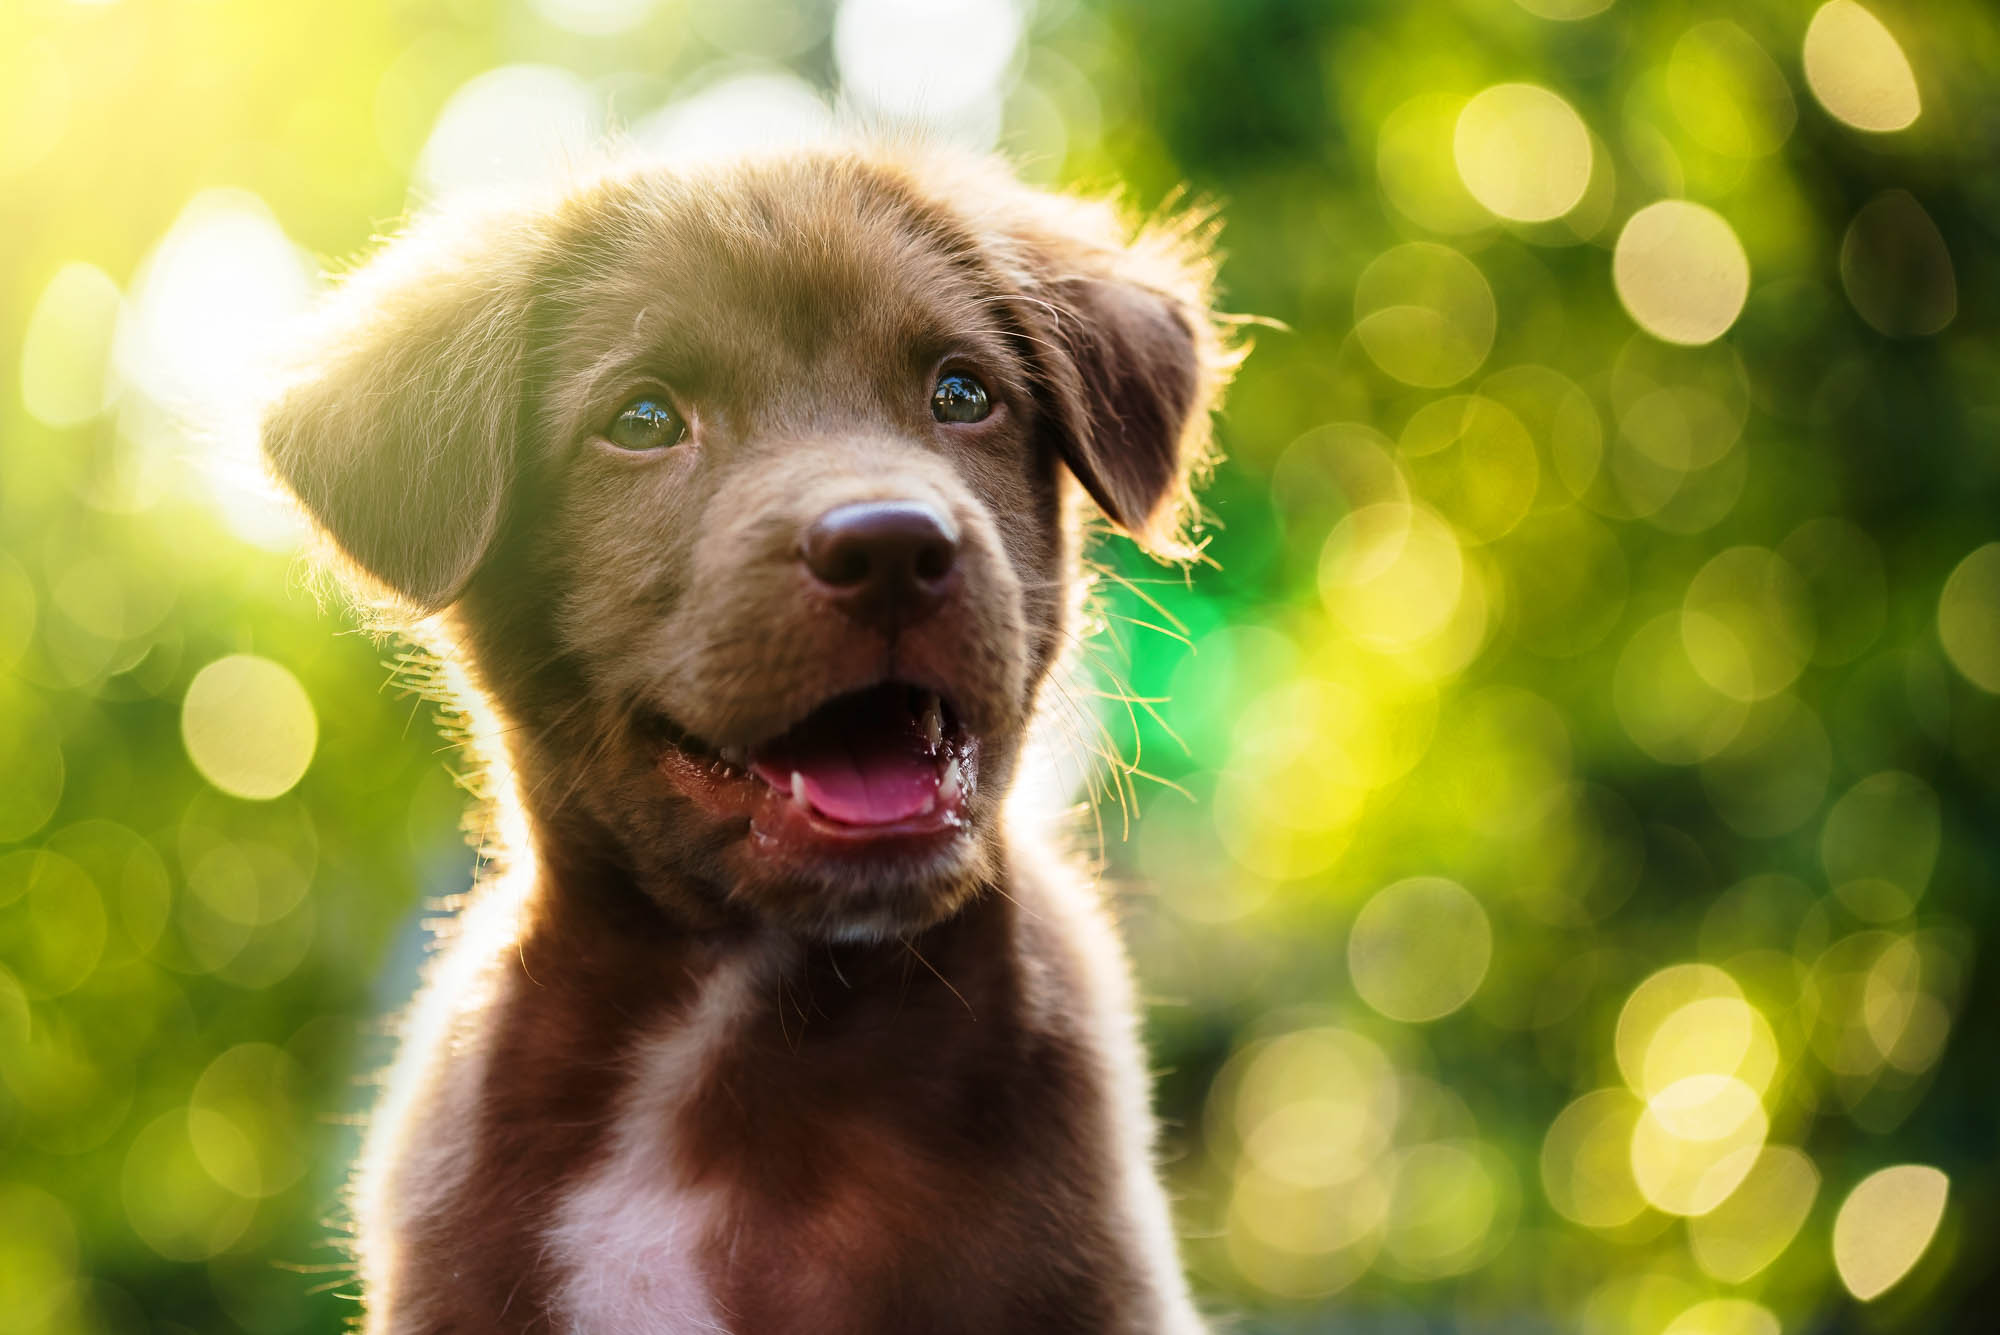 Adorable Labrador puppy dog portrait with light bokeh abstract background